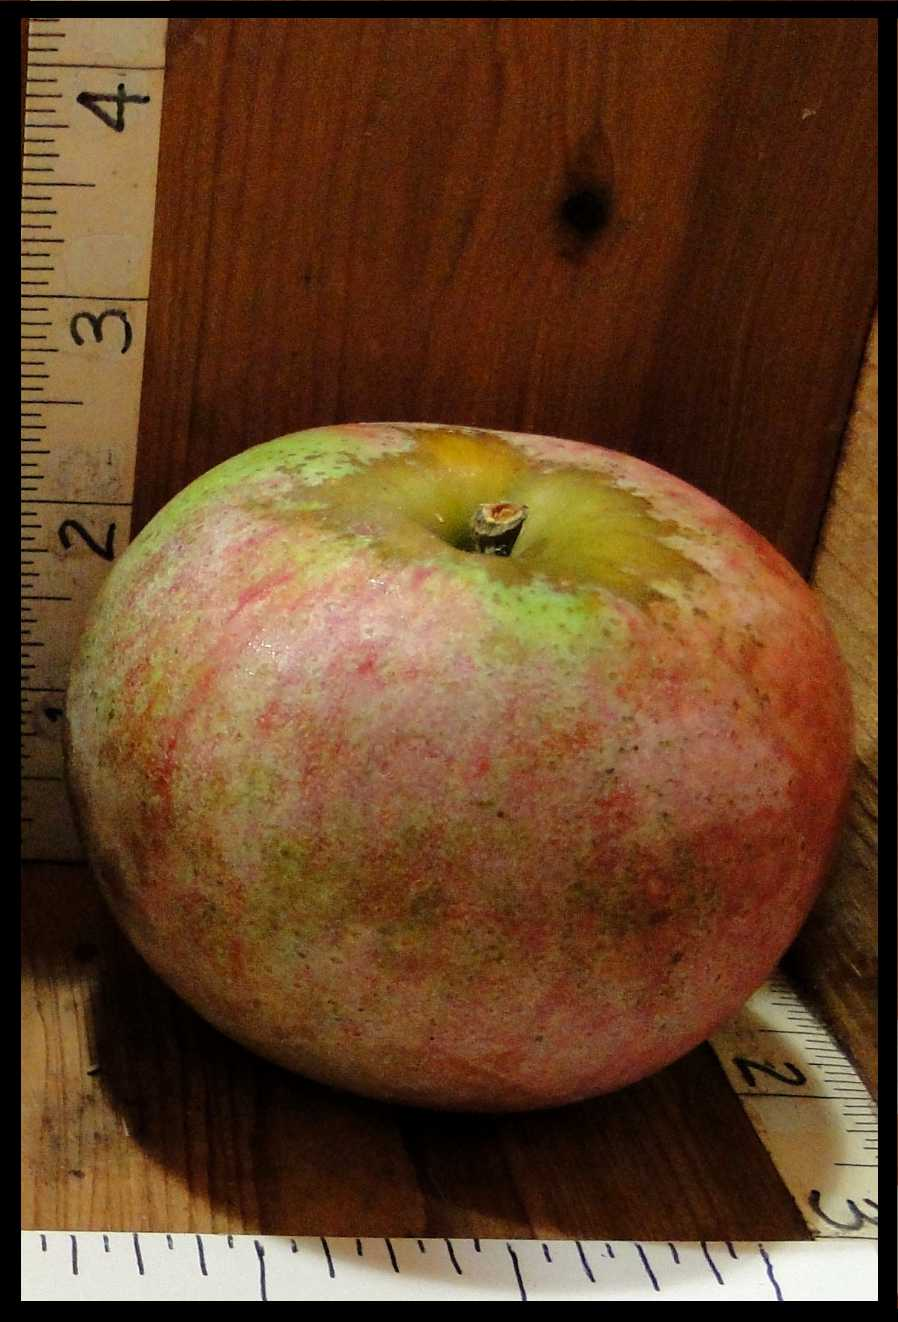 apple that is a dull mottled red and green